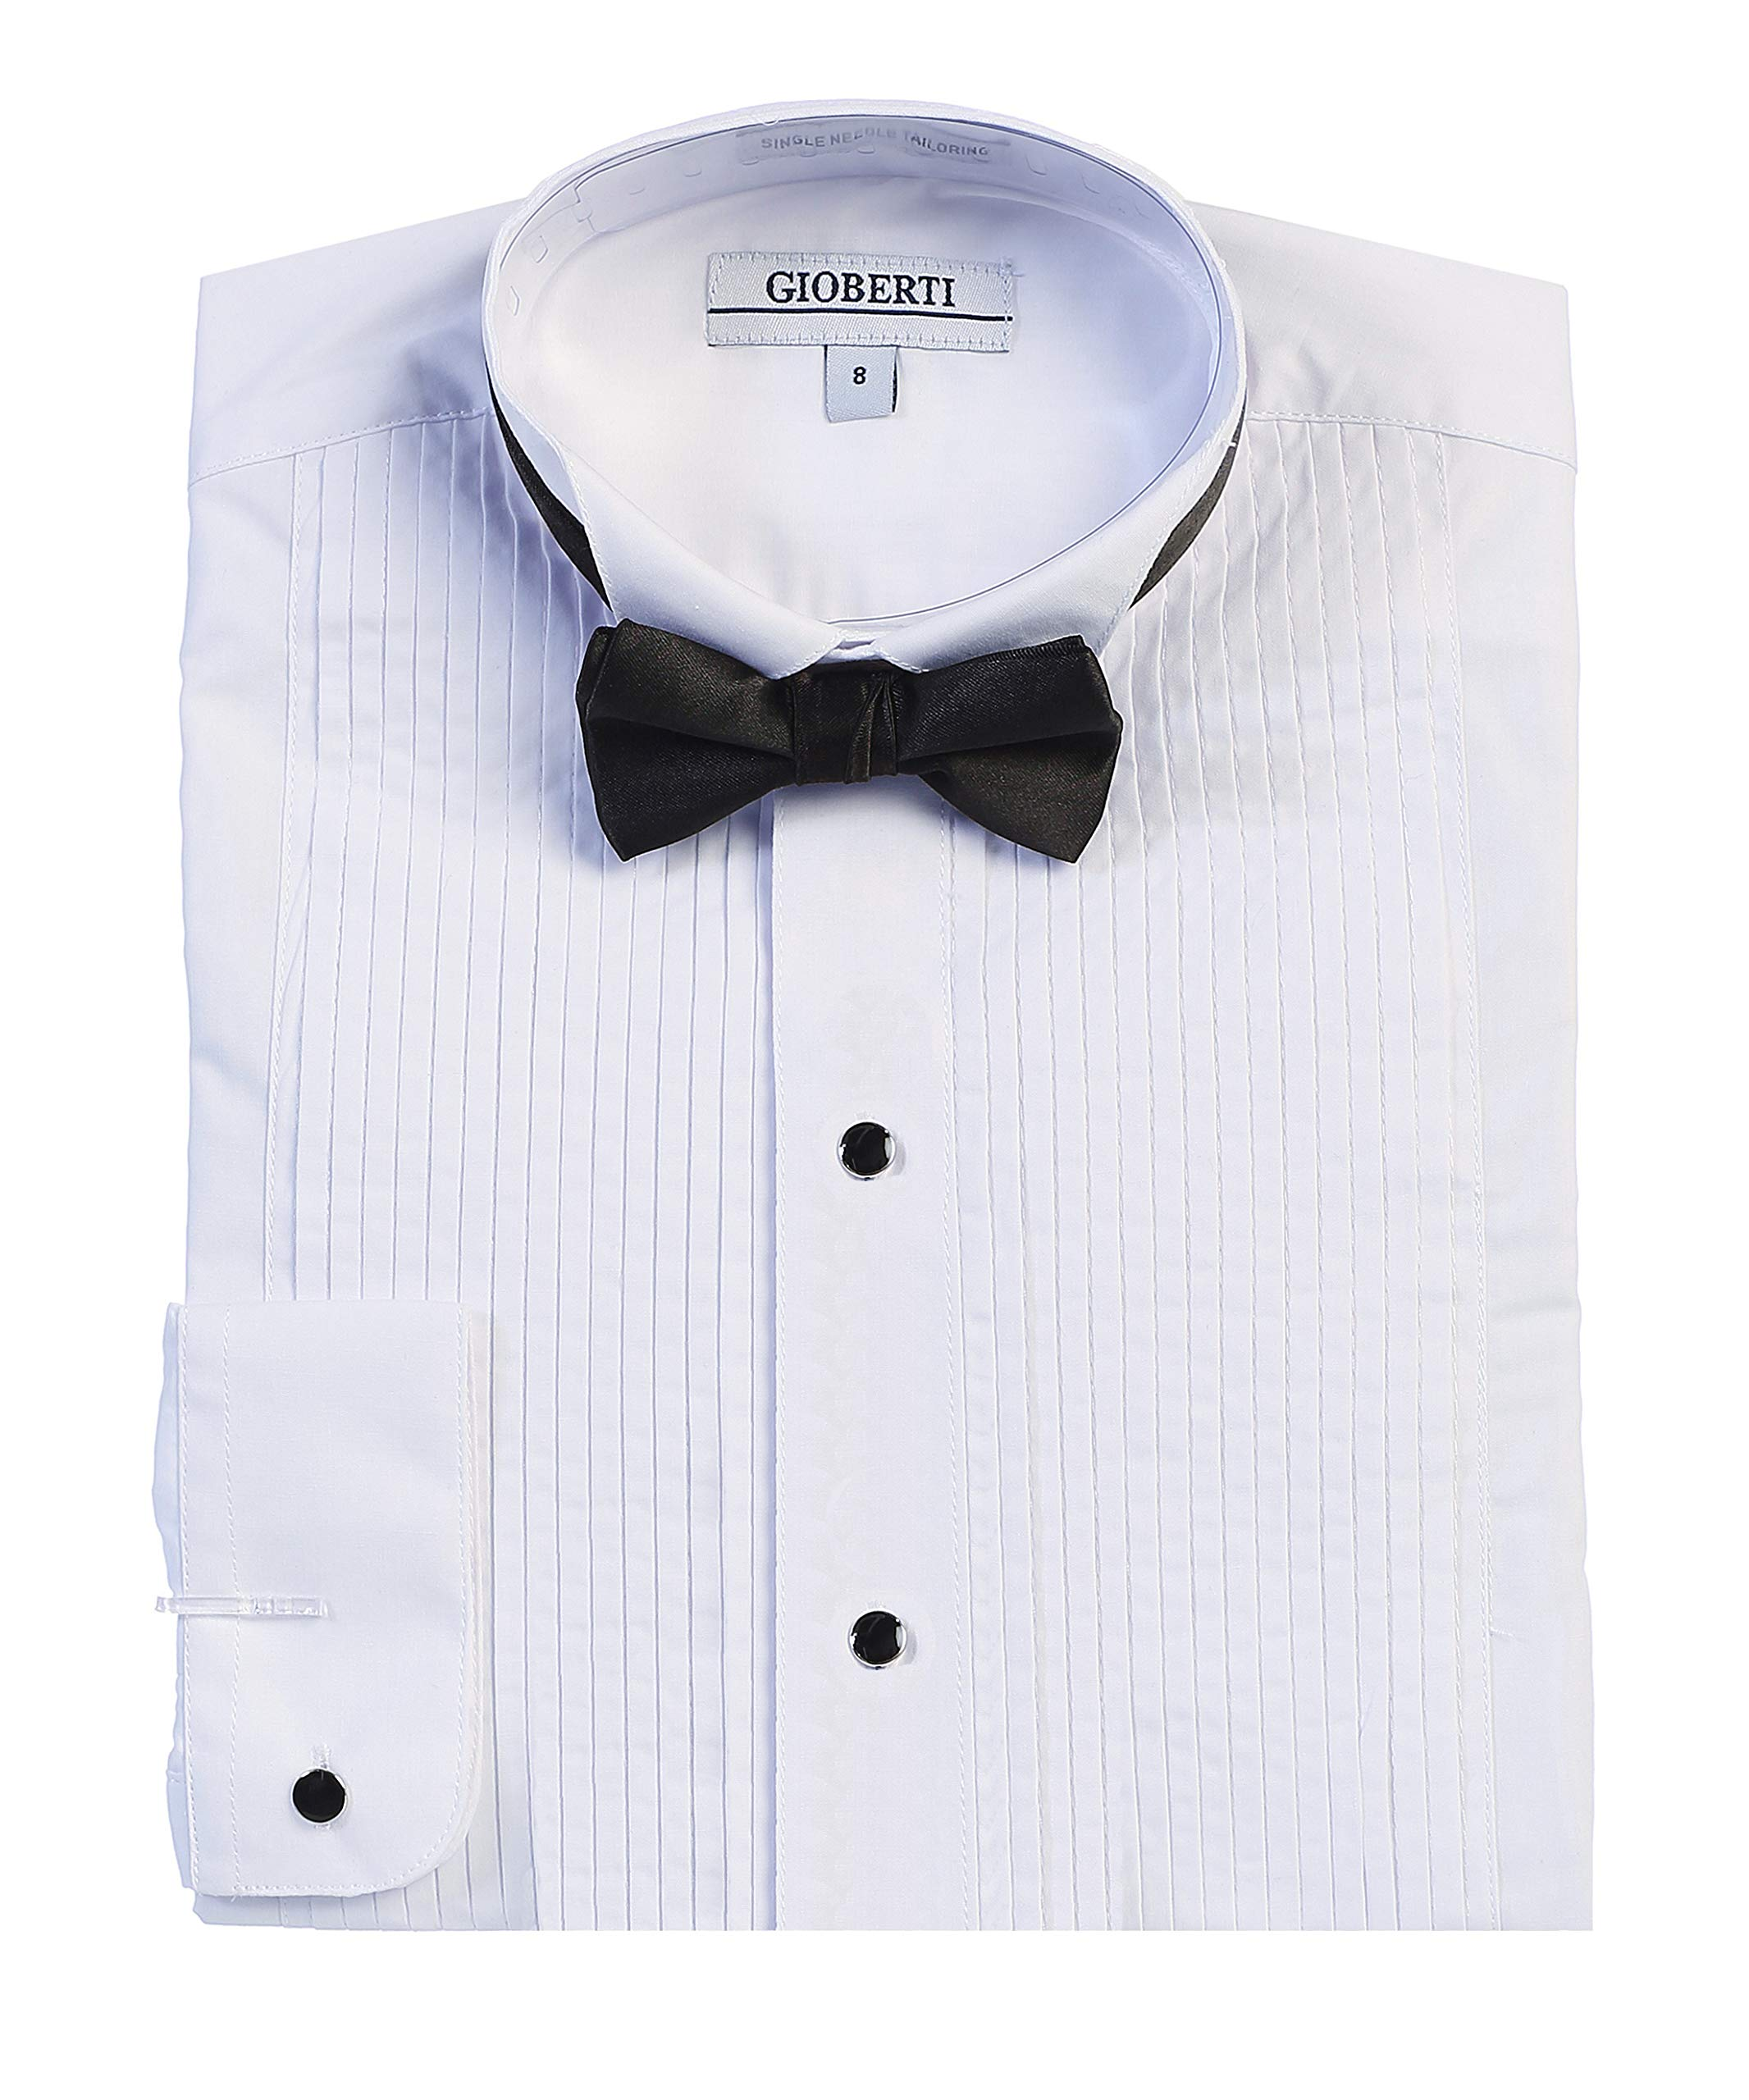 Gioberti Boy's Wing Tip Collar White Tuxedo Dress Shirt with Bow Tie and Metal Studs, White, Size 10